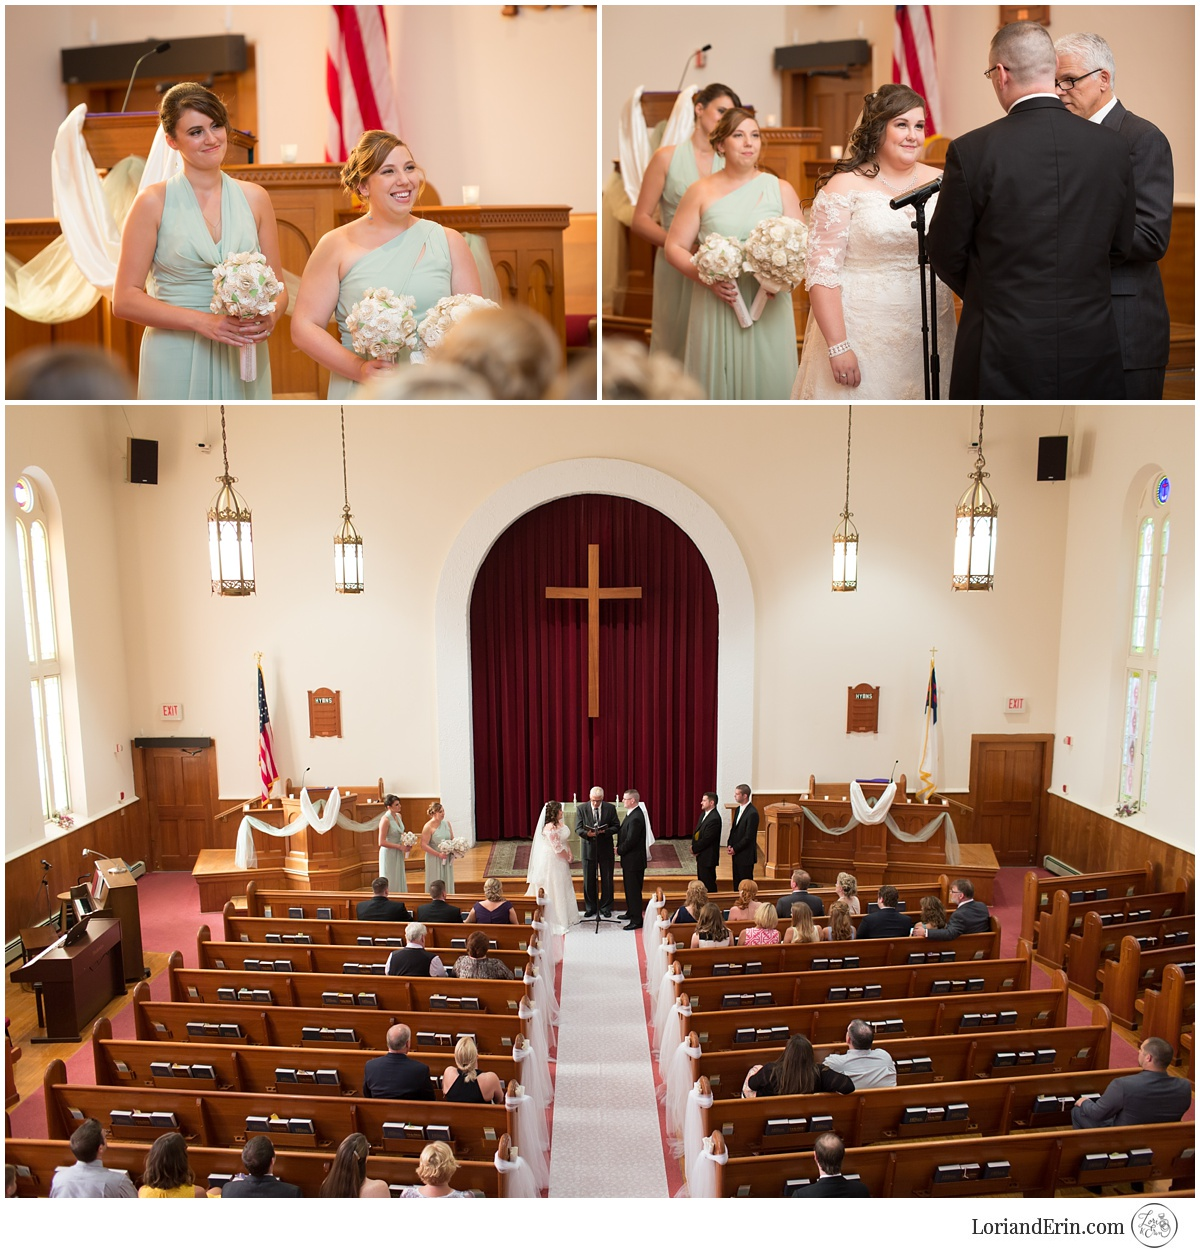 syracuse_ny_wedding_photographers_0530.jpg